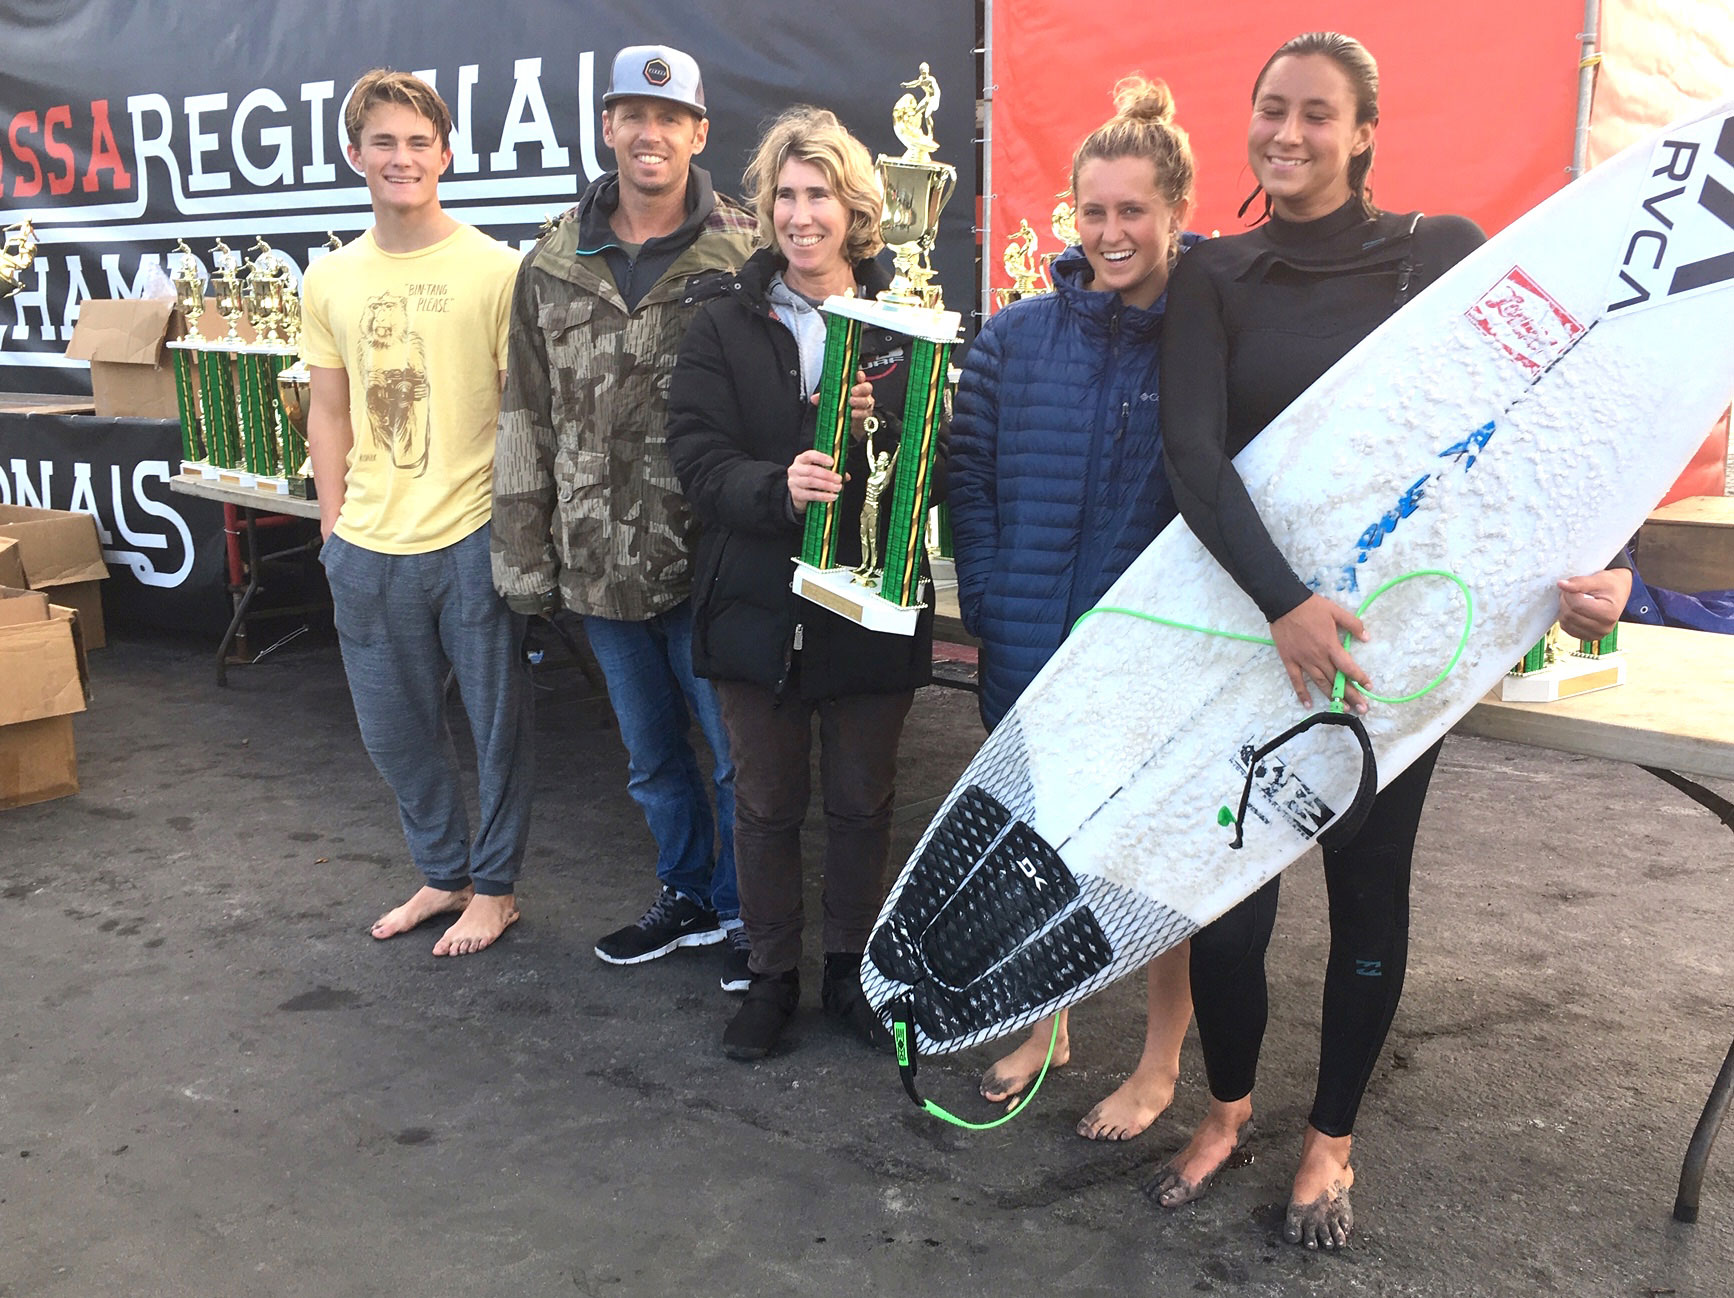 Surf team two Sam Nelsen, Coaches Scott Finn, and Alisa Cairns, Kayla Coscino and Tess Booth